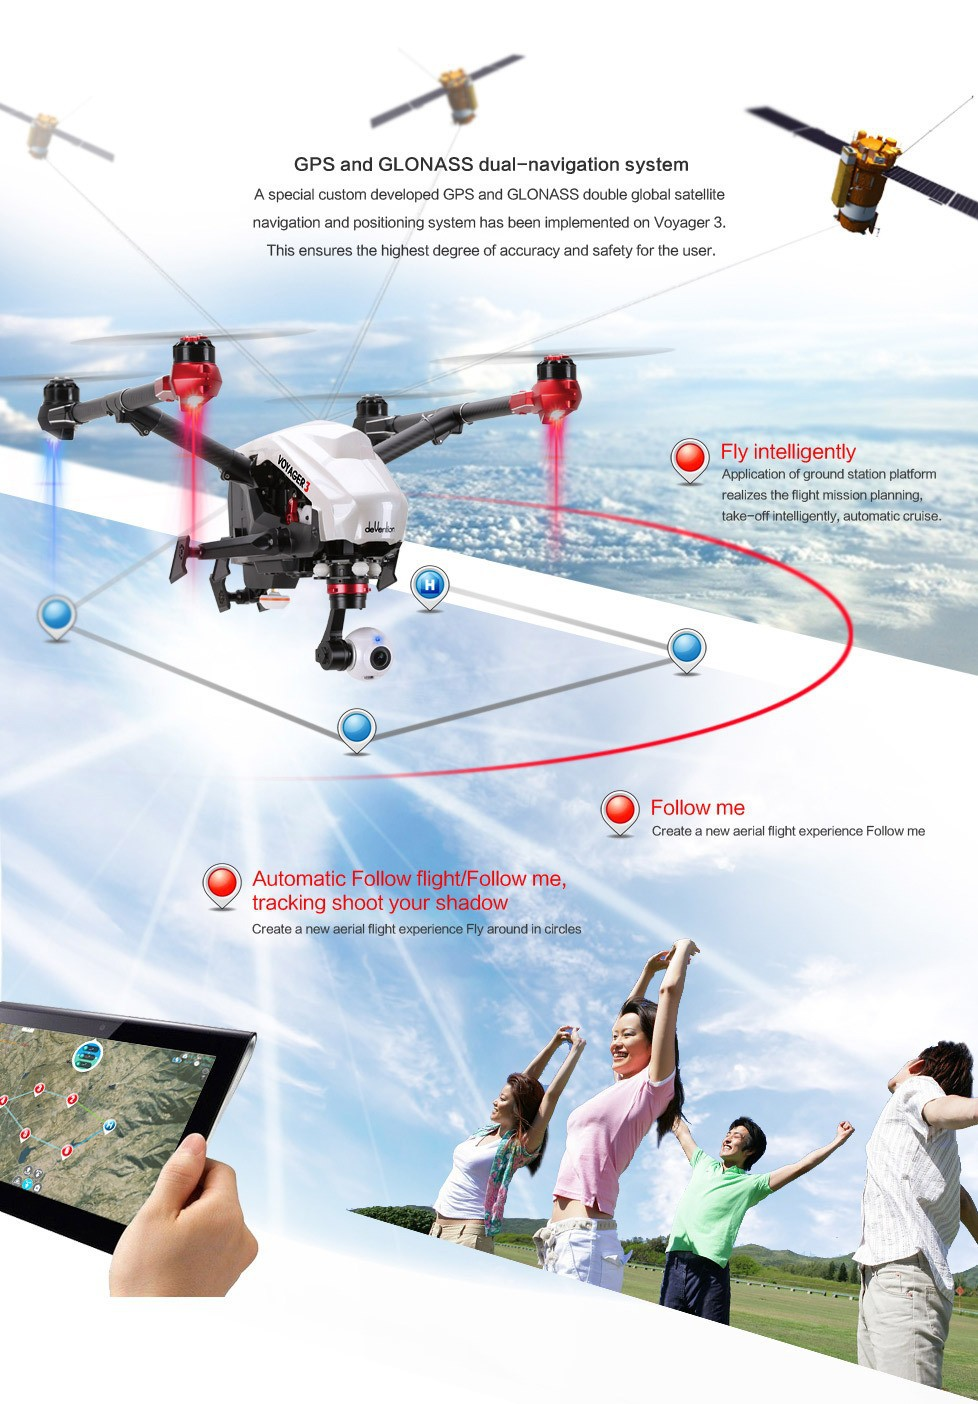 WALKERA VOYAGER 3 FPV 4K Camera & GLONASS Dual-Navigation System Detachable & Unrestricted 360 Degree Gimbal PK DJI Inspire 1